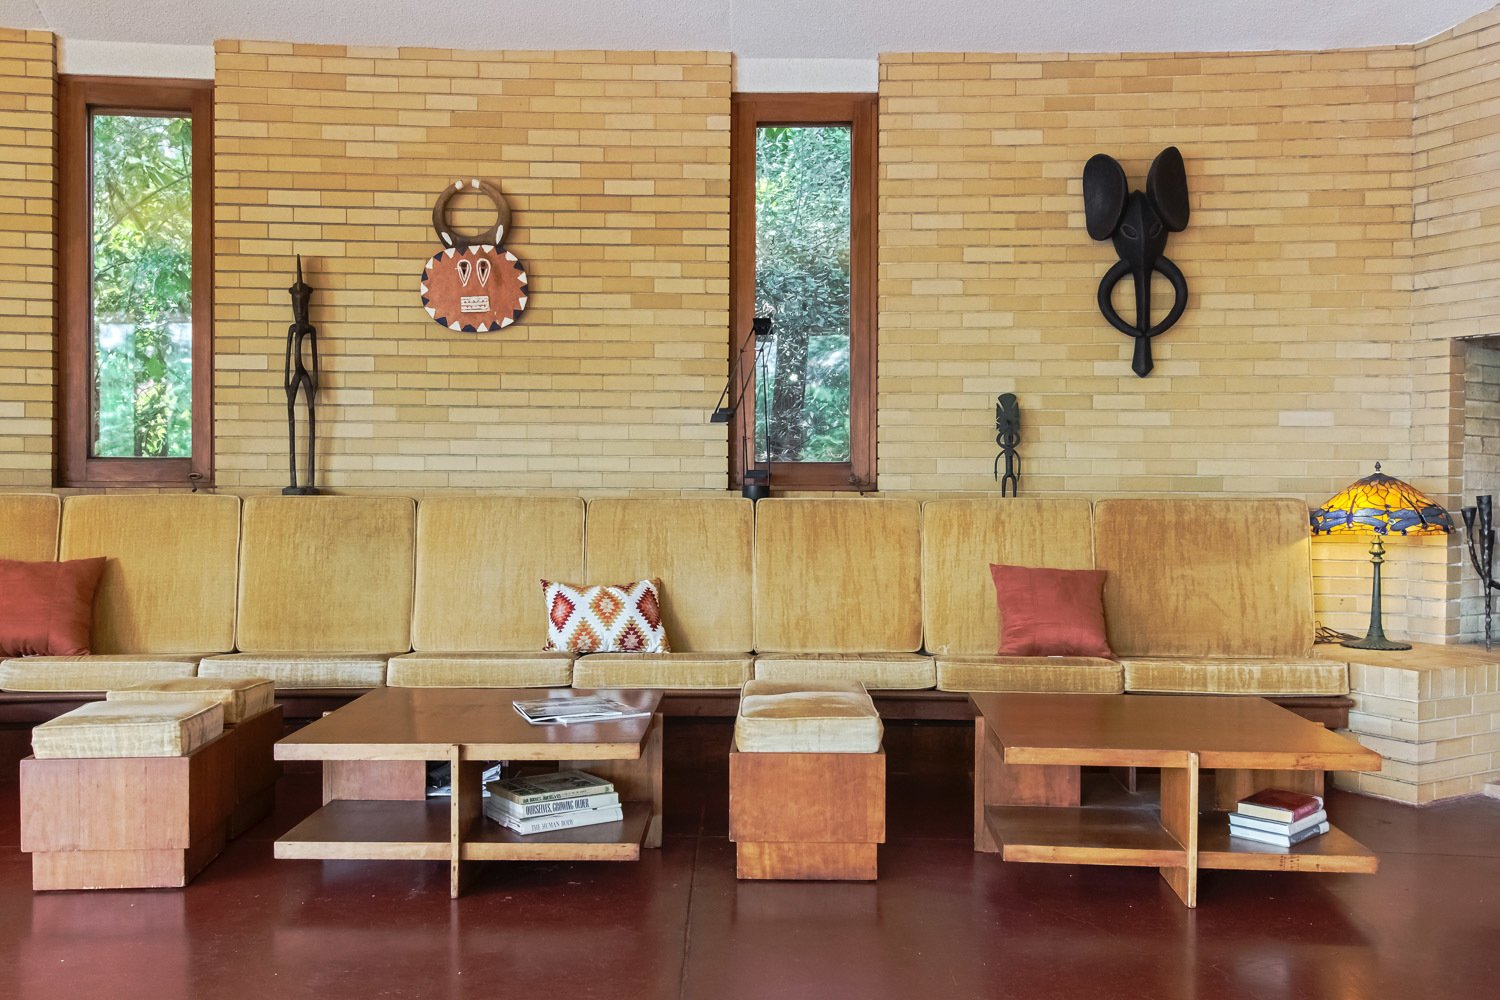 Photo 4 of 7 in You Can Own One of Frank Lloyd Wright's Final Homes for $2.75 Million